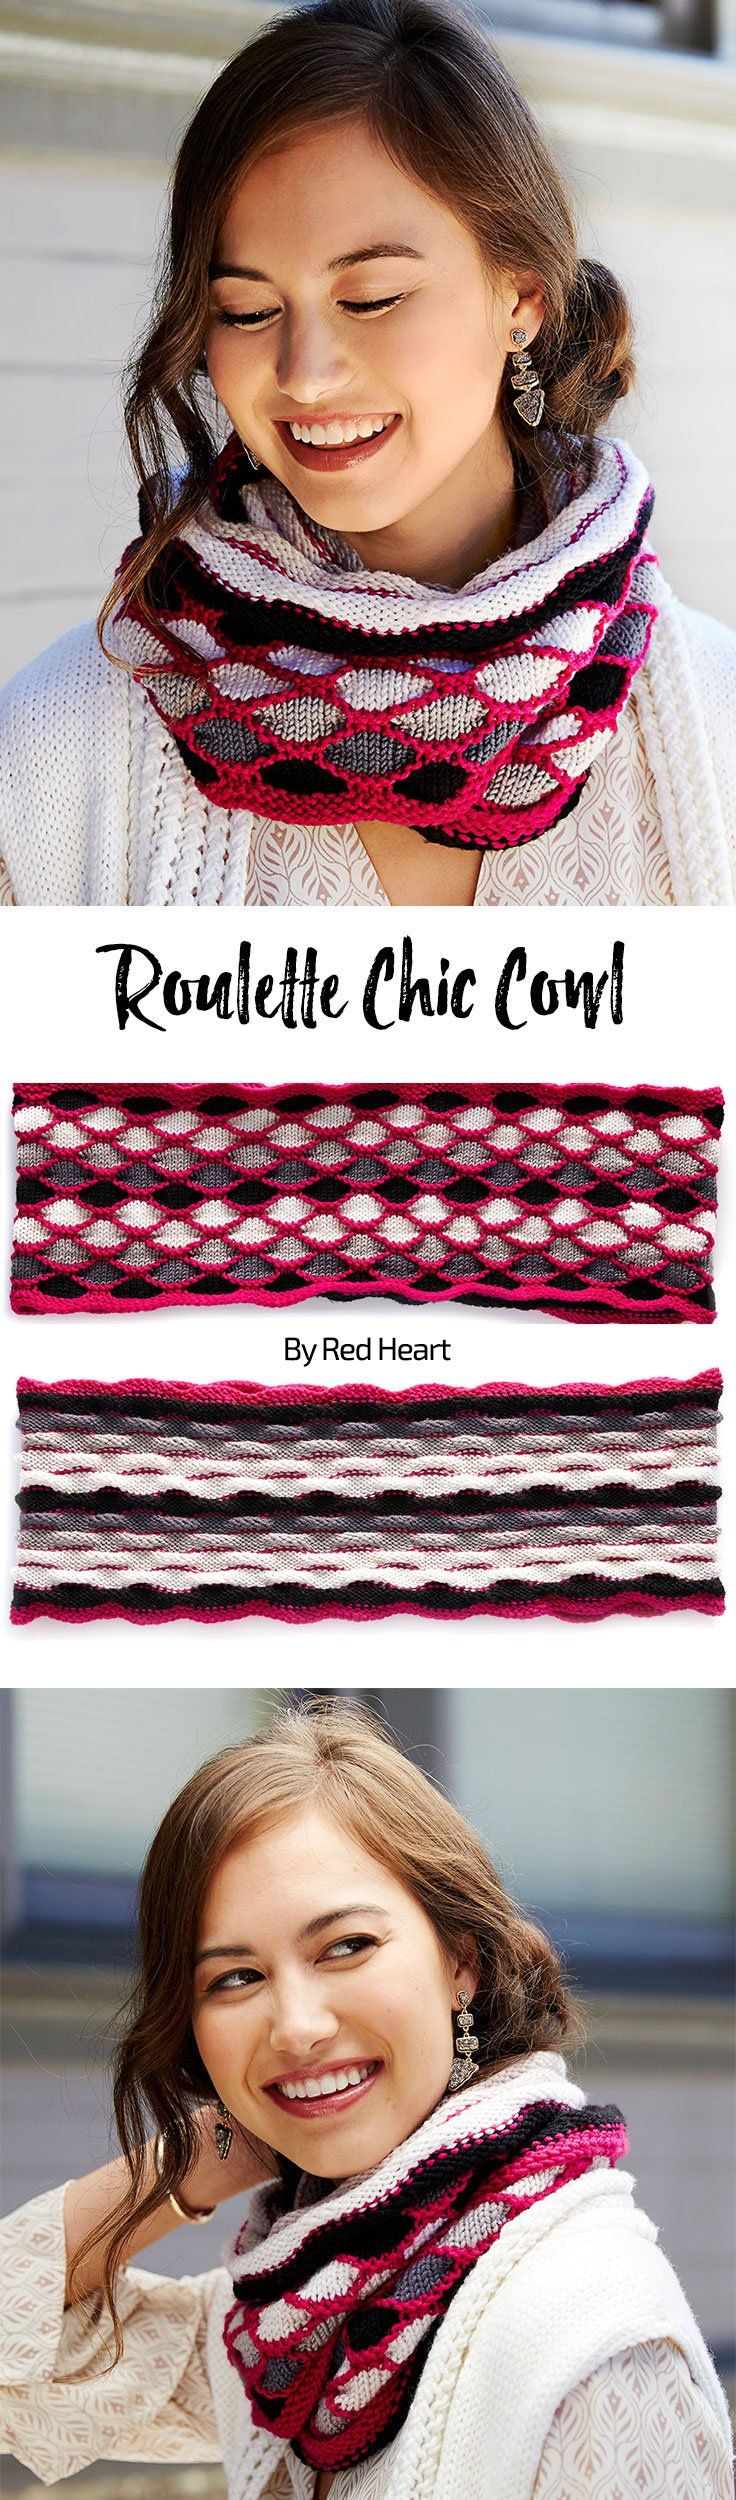 Roulette Chic Cowl free crochet pattern in Dreamy yarn.